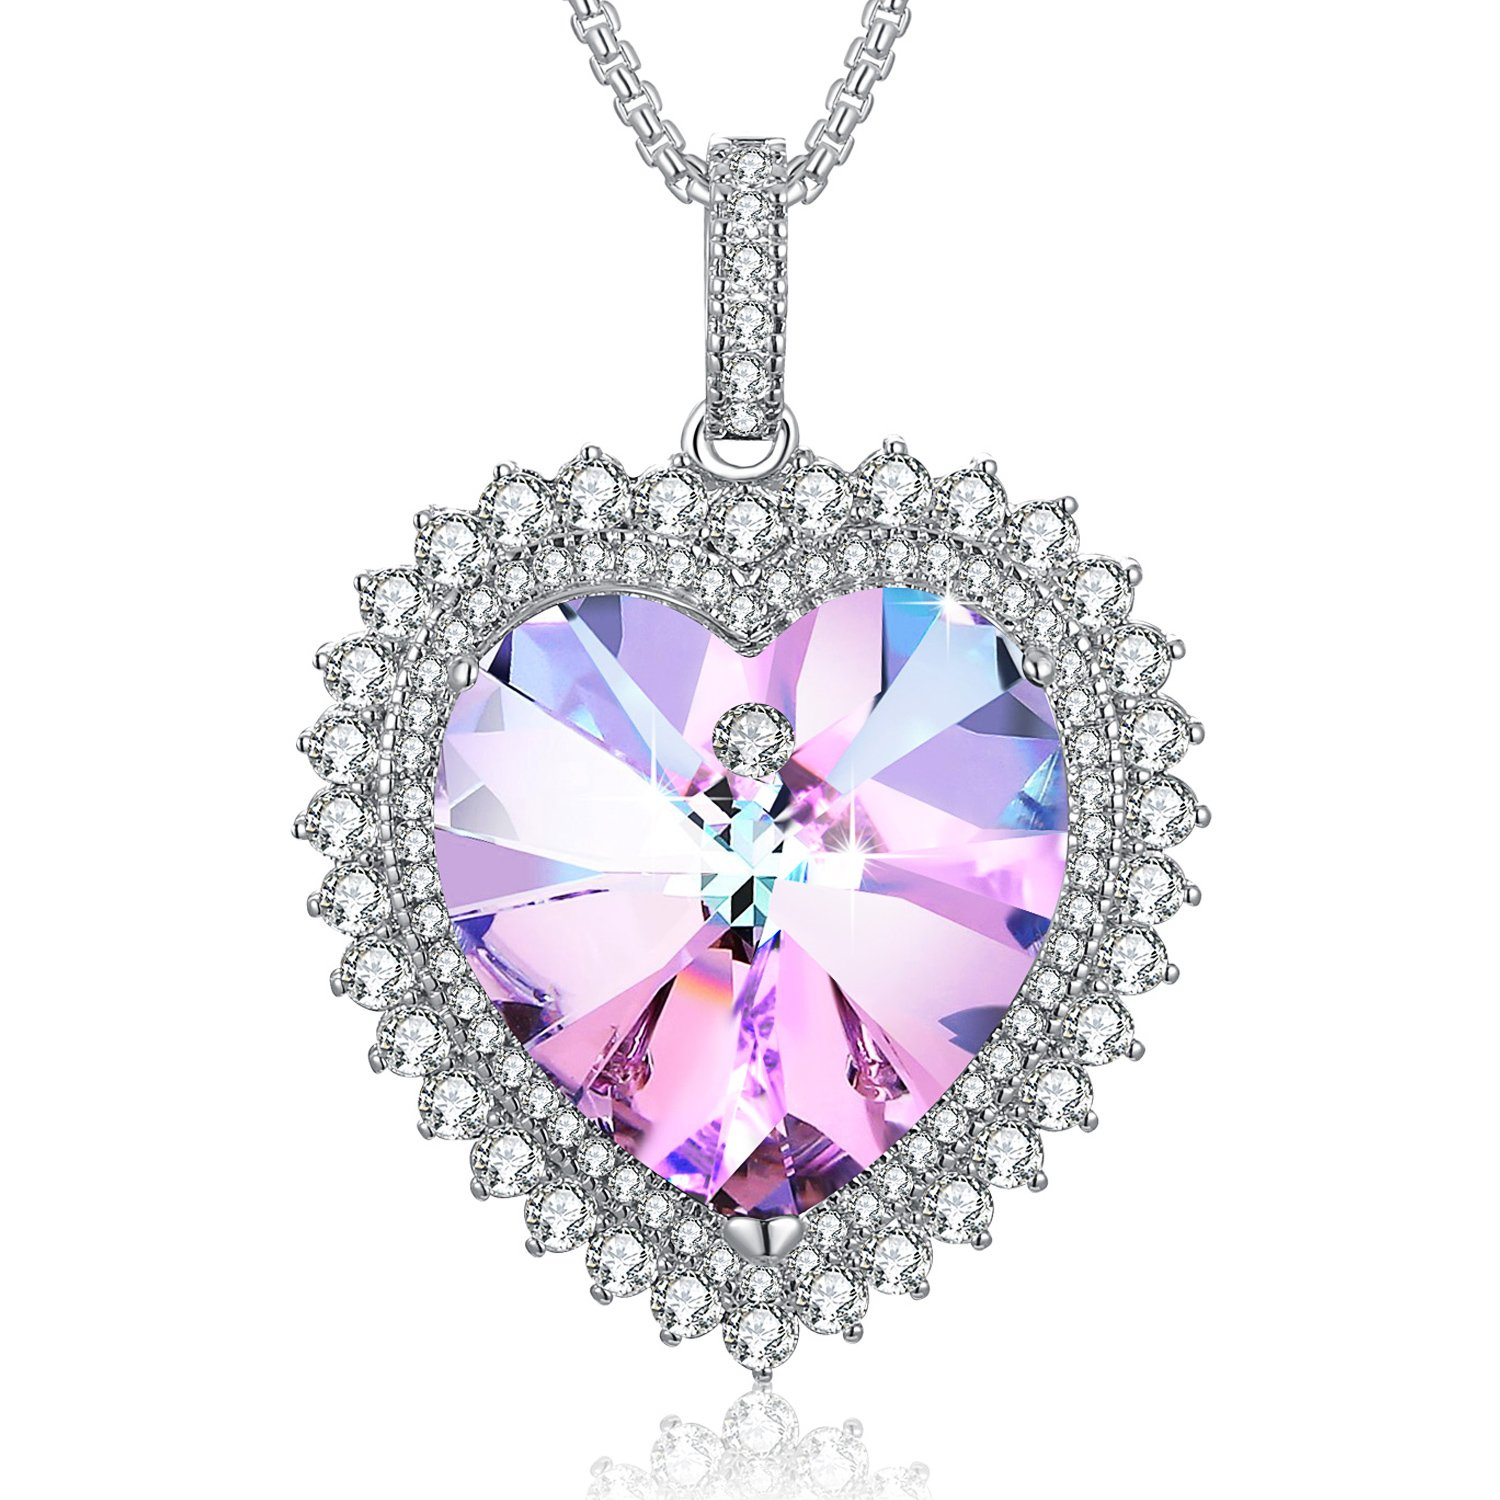 Heart Shape Necklace Mom Gifts Necklace PLATO H Swarovski Elements Crystal Deep Love Heart Pendant Necklace for Women, Best Gft for Her, Hot Pink